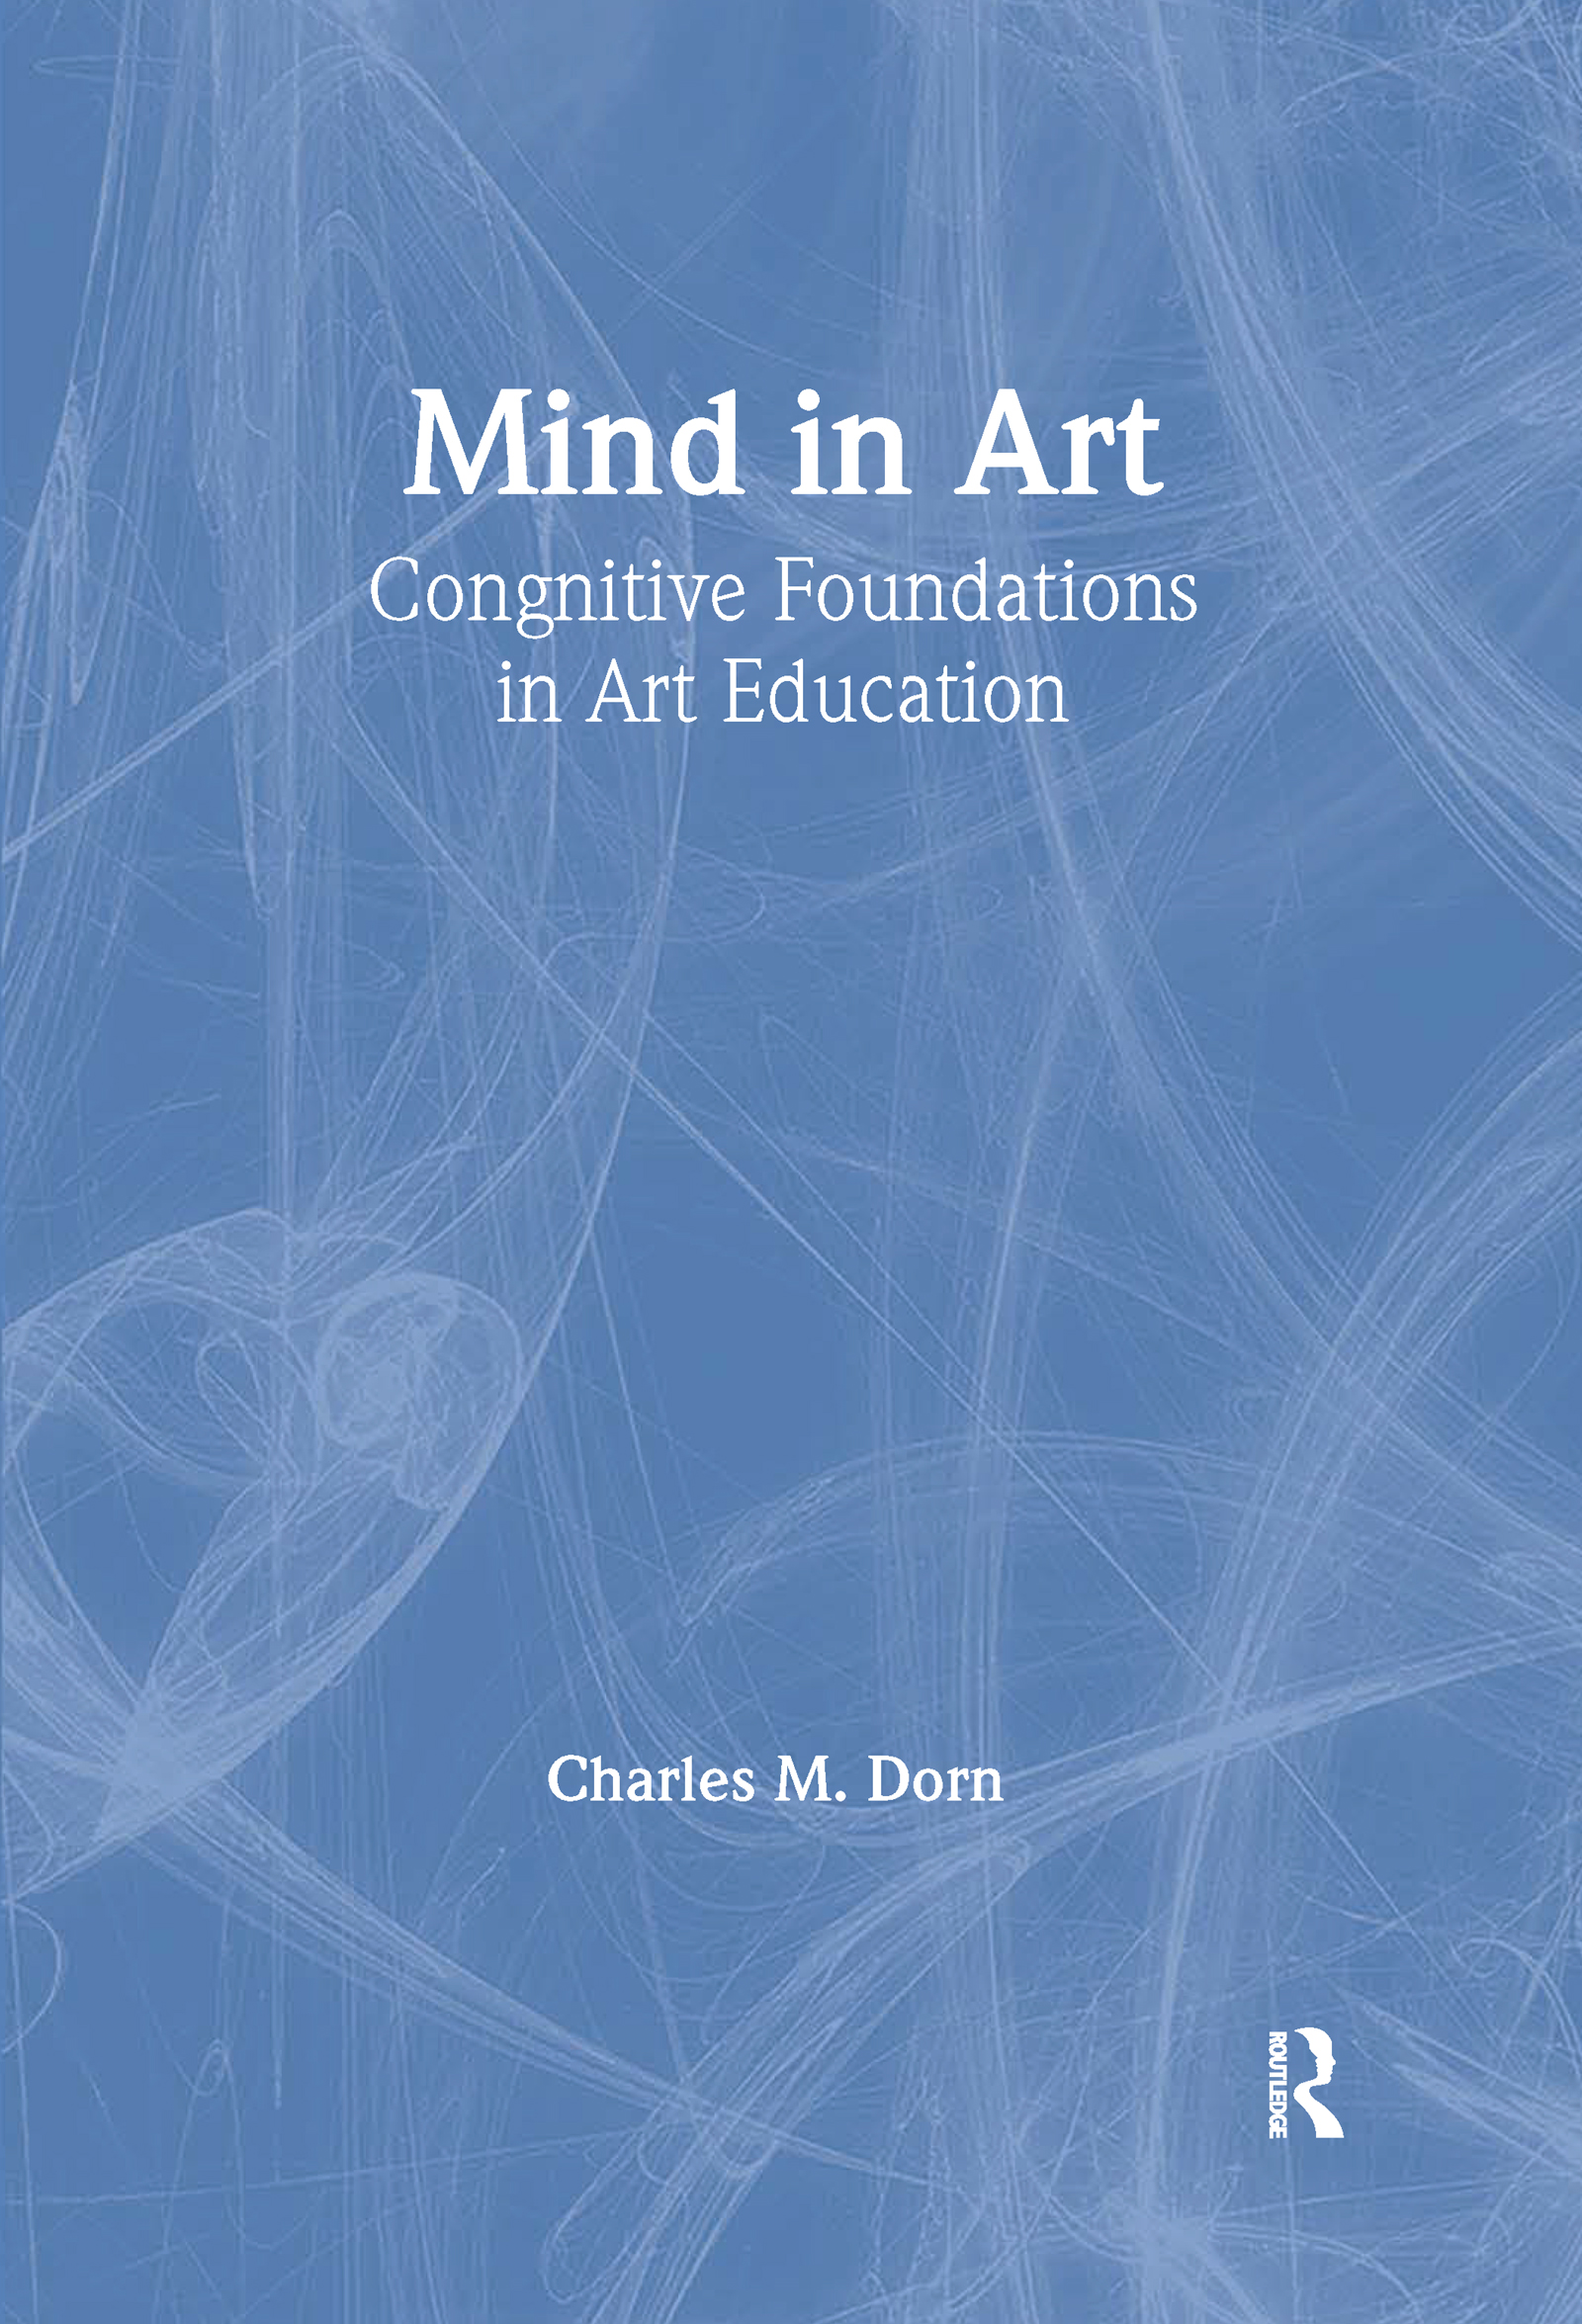 Cognition in Art